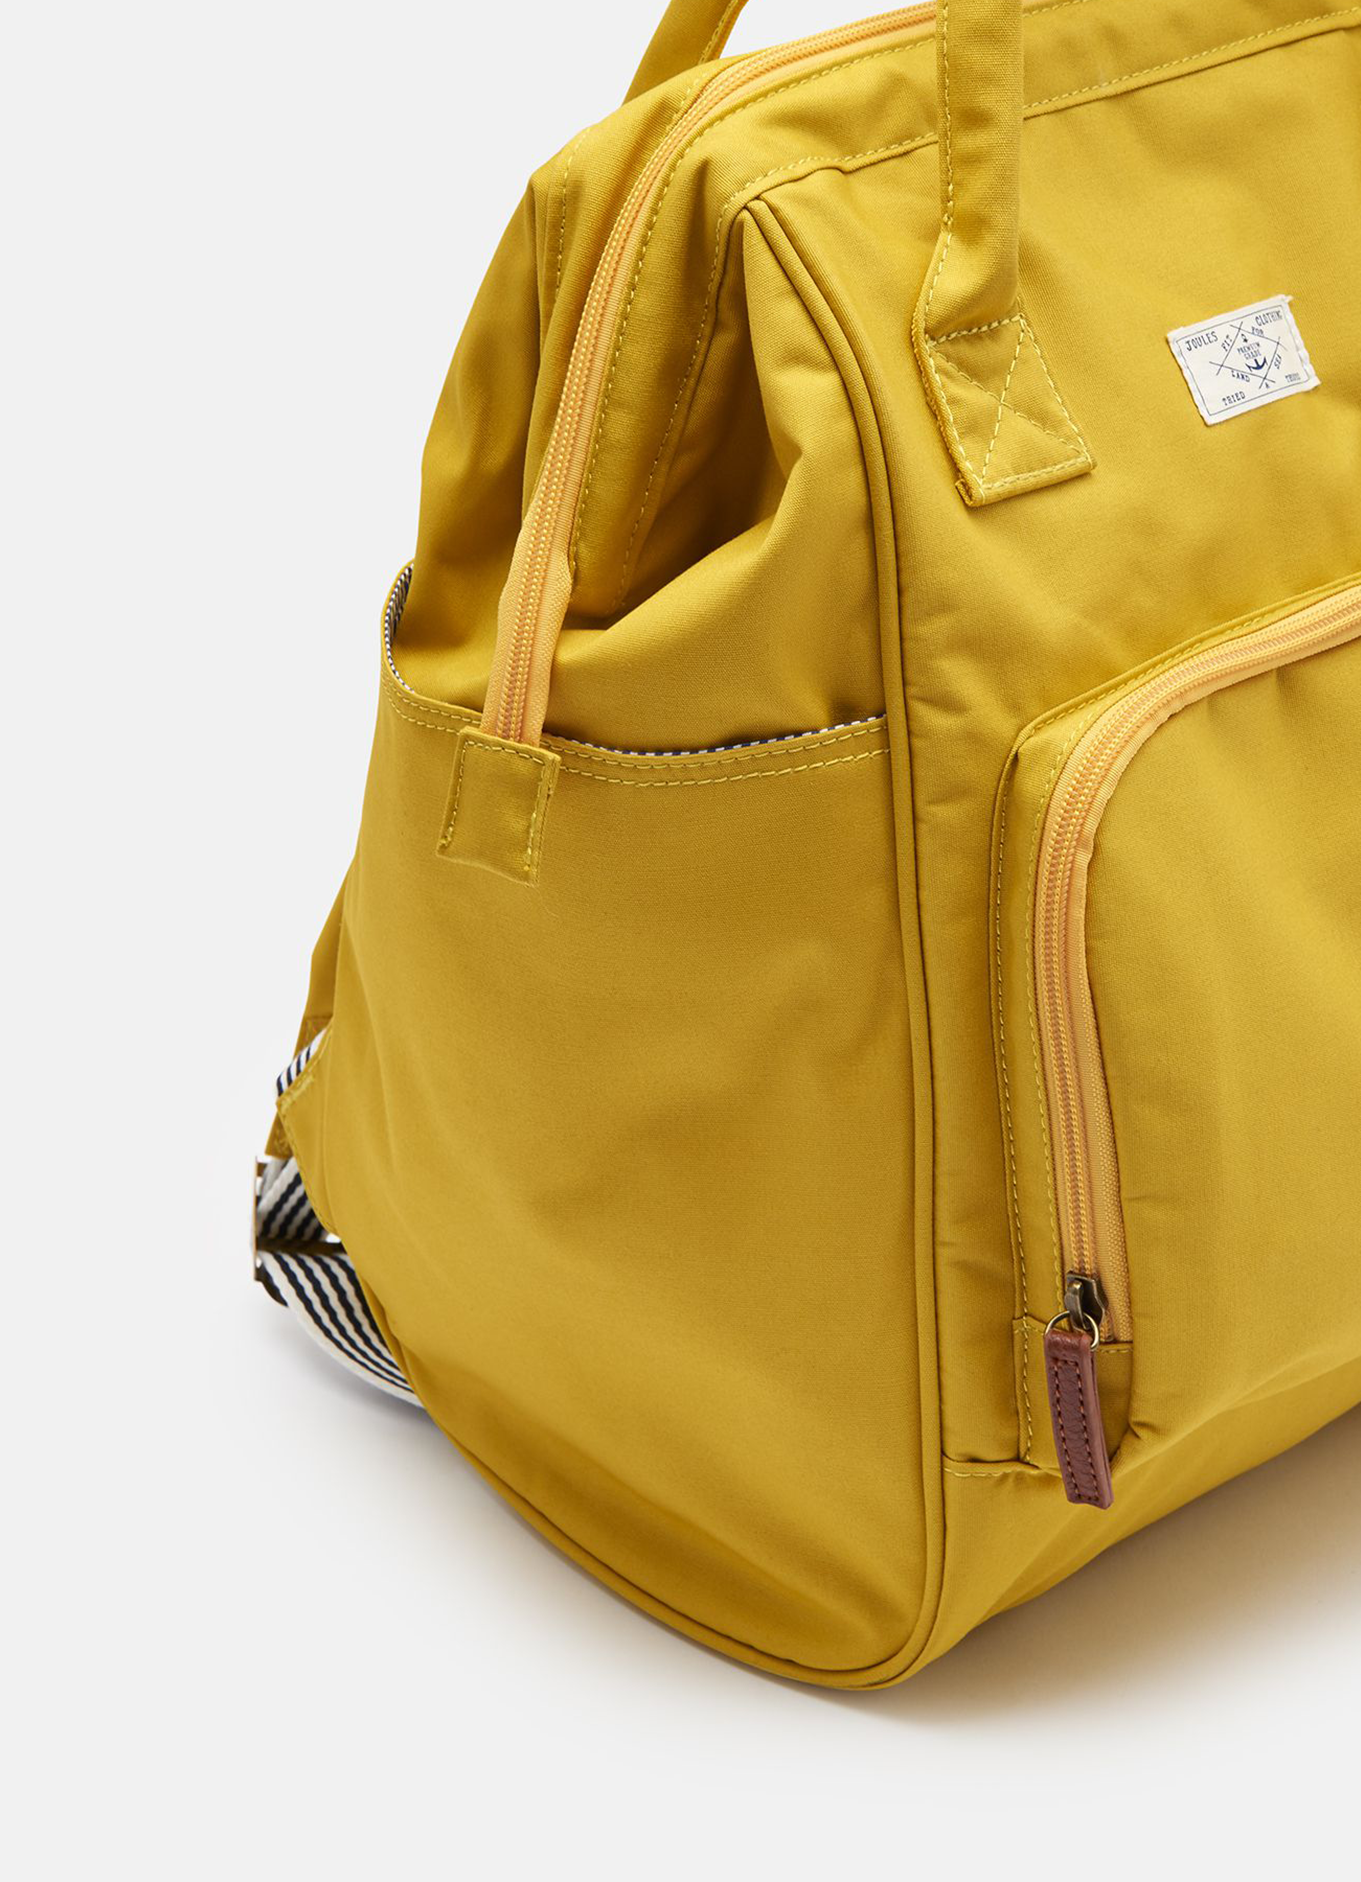 joules coast rucksack (gifted) - For practical reasons, if it's pouring with rain a backpack is probably the best thing to use. As much as I love pretty tote bags and rattan bags if there is one thing they're not cut out for it's the rain. Along side this beautiful bag I've also been using my beloved Kanken which is another great bag for the rain but I do find this one a little more comfortable if I have a lot of stuff with me. It looks nice and compact but it fits a huge amount in and it has a lot of compartments which is key for a large bag as it's all too easy for things to get lost. The yellow is a really lovely pop of colour in my otherwise pretty monochromatic wardrobe too.